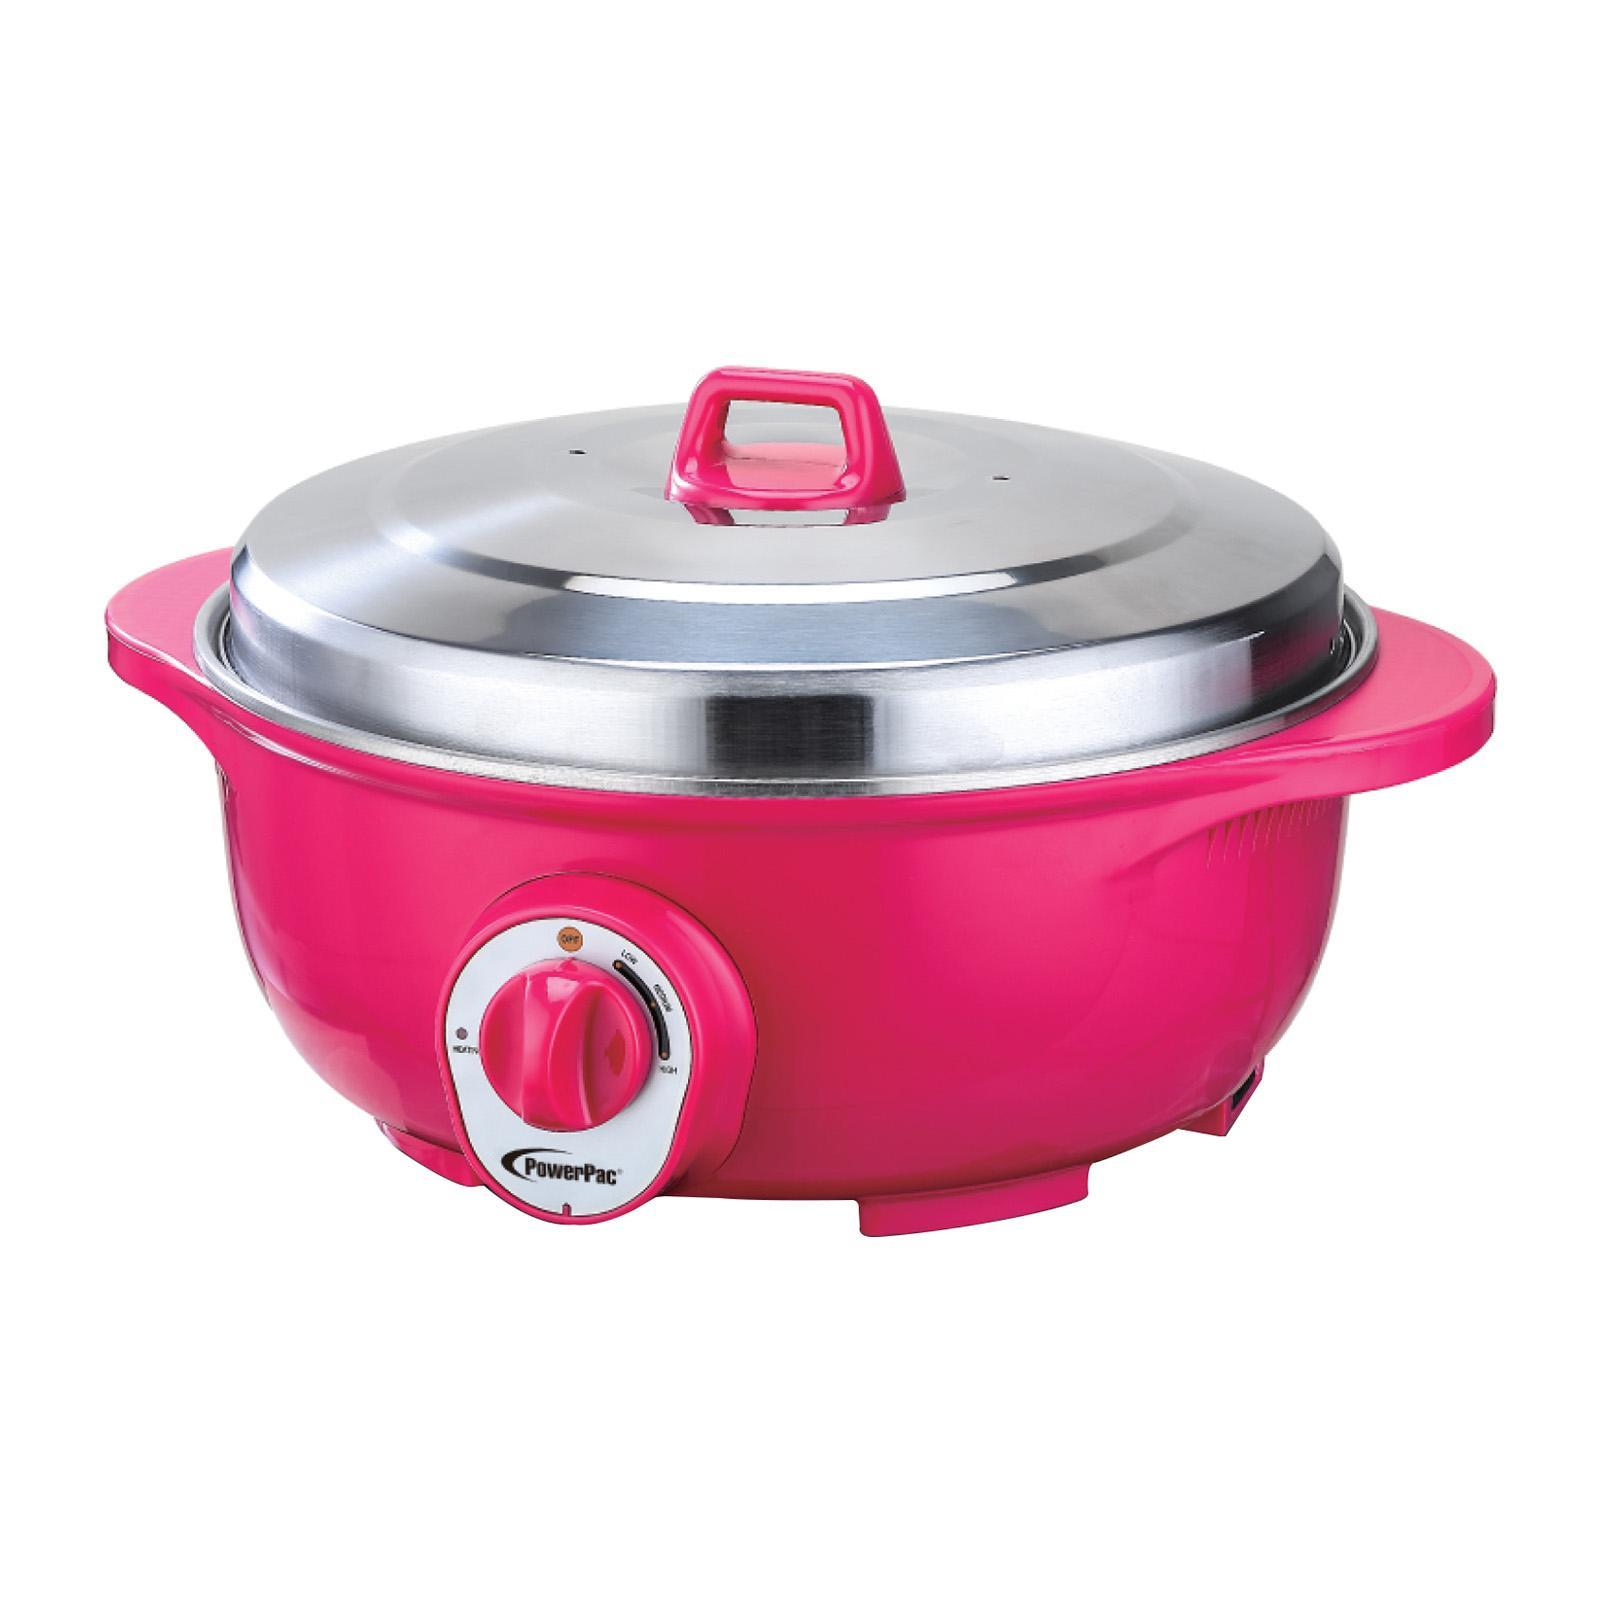 PowerPac Retro Electric Wok And Steamboat With 304 Stainless Steel Inner Pot (PPEC813)